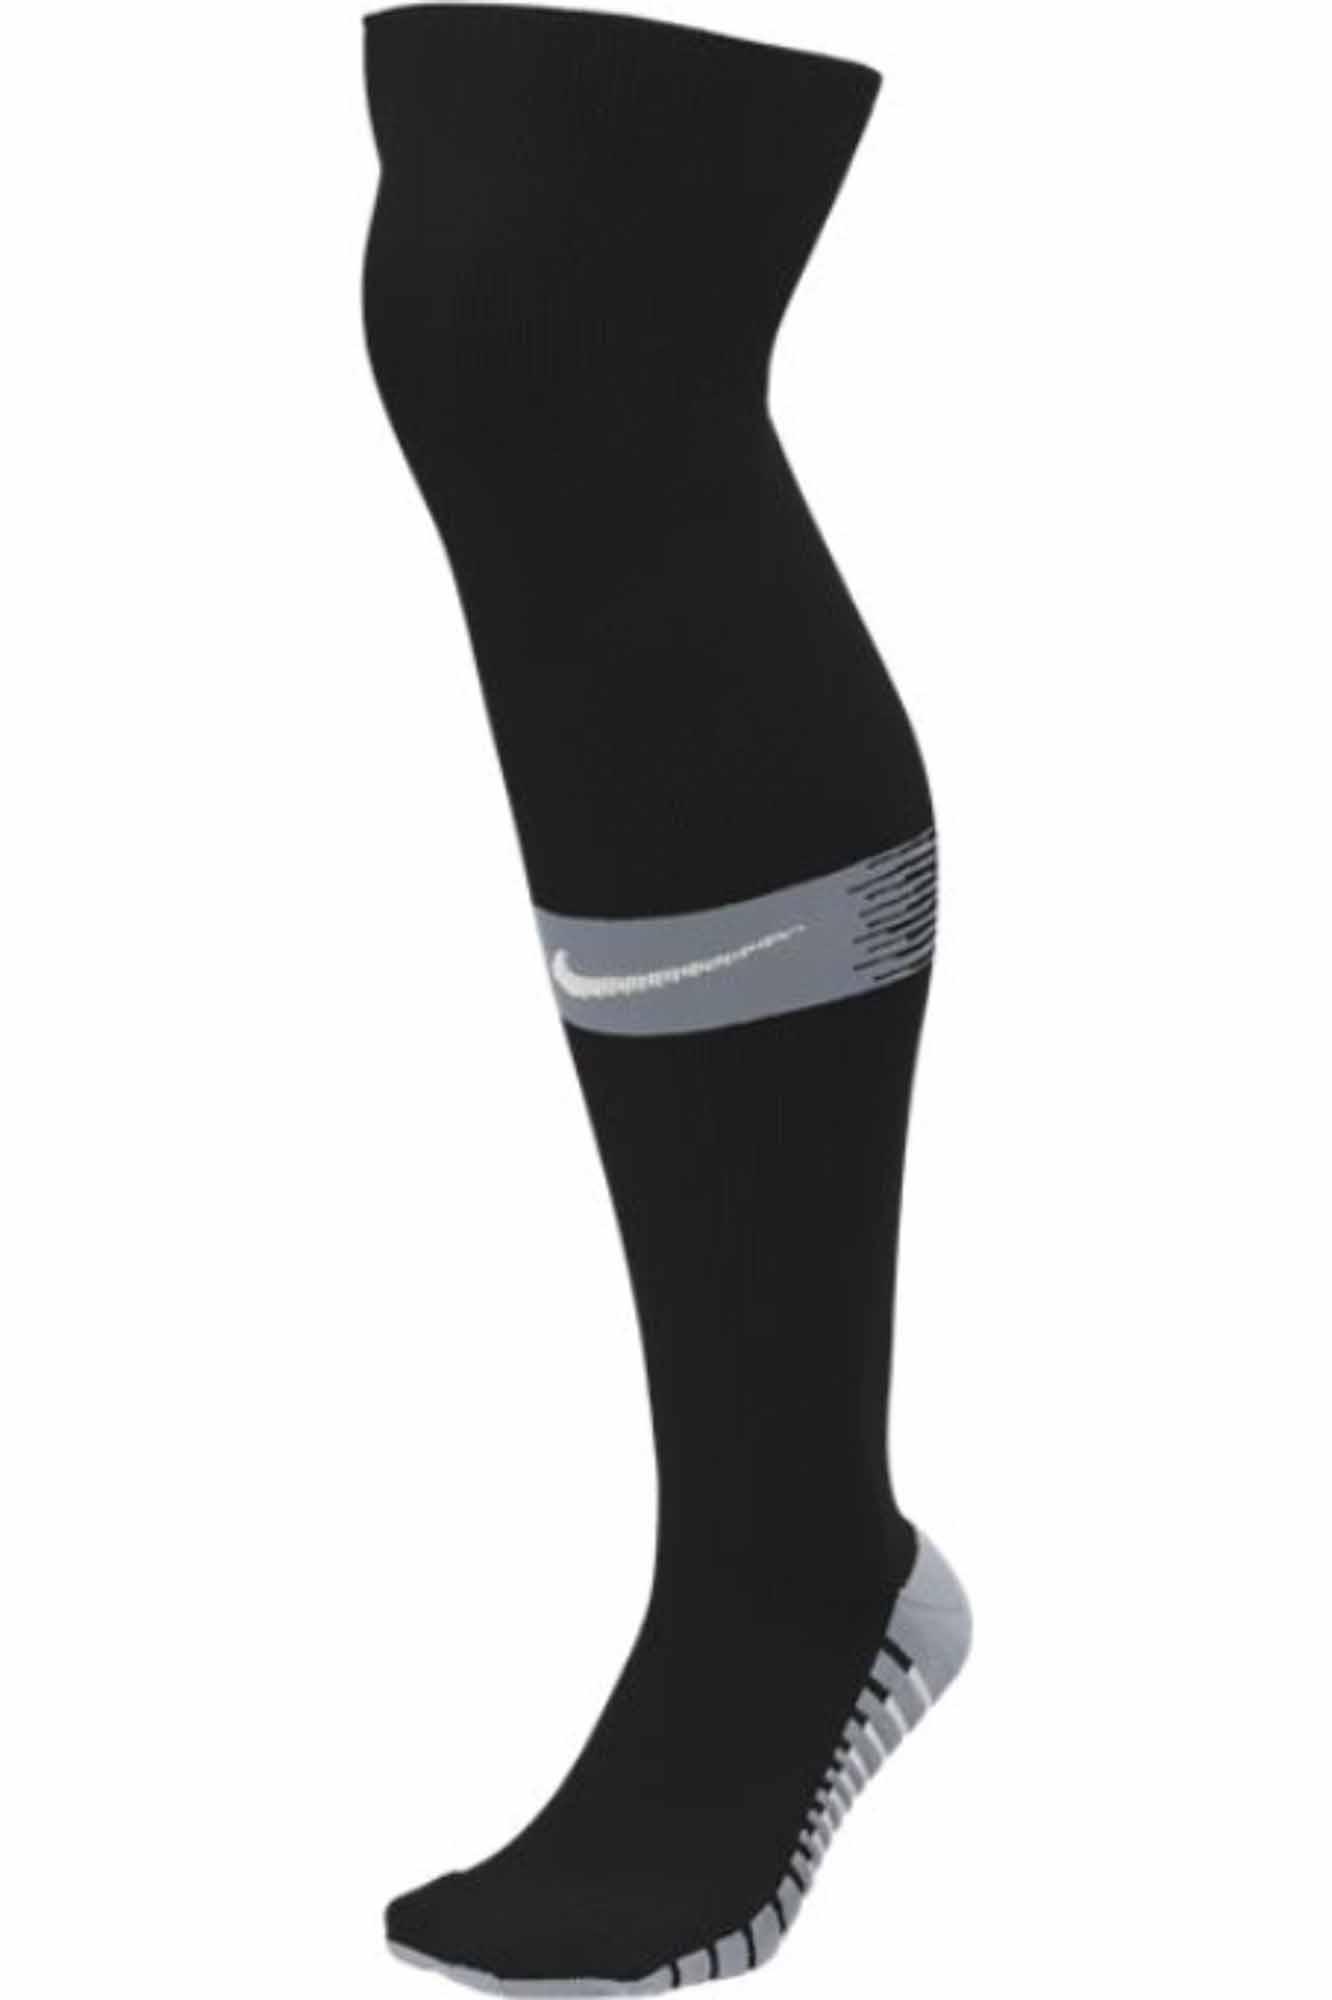 23a8b2f87606 Nike Team Matchfit Soccer Socks - Black Cool Grey - SoccerPro